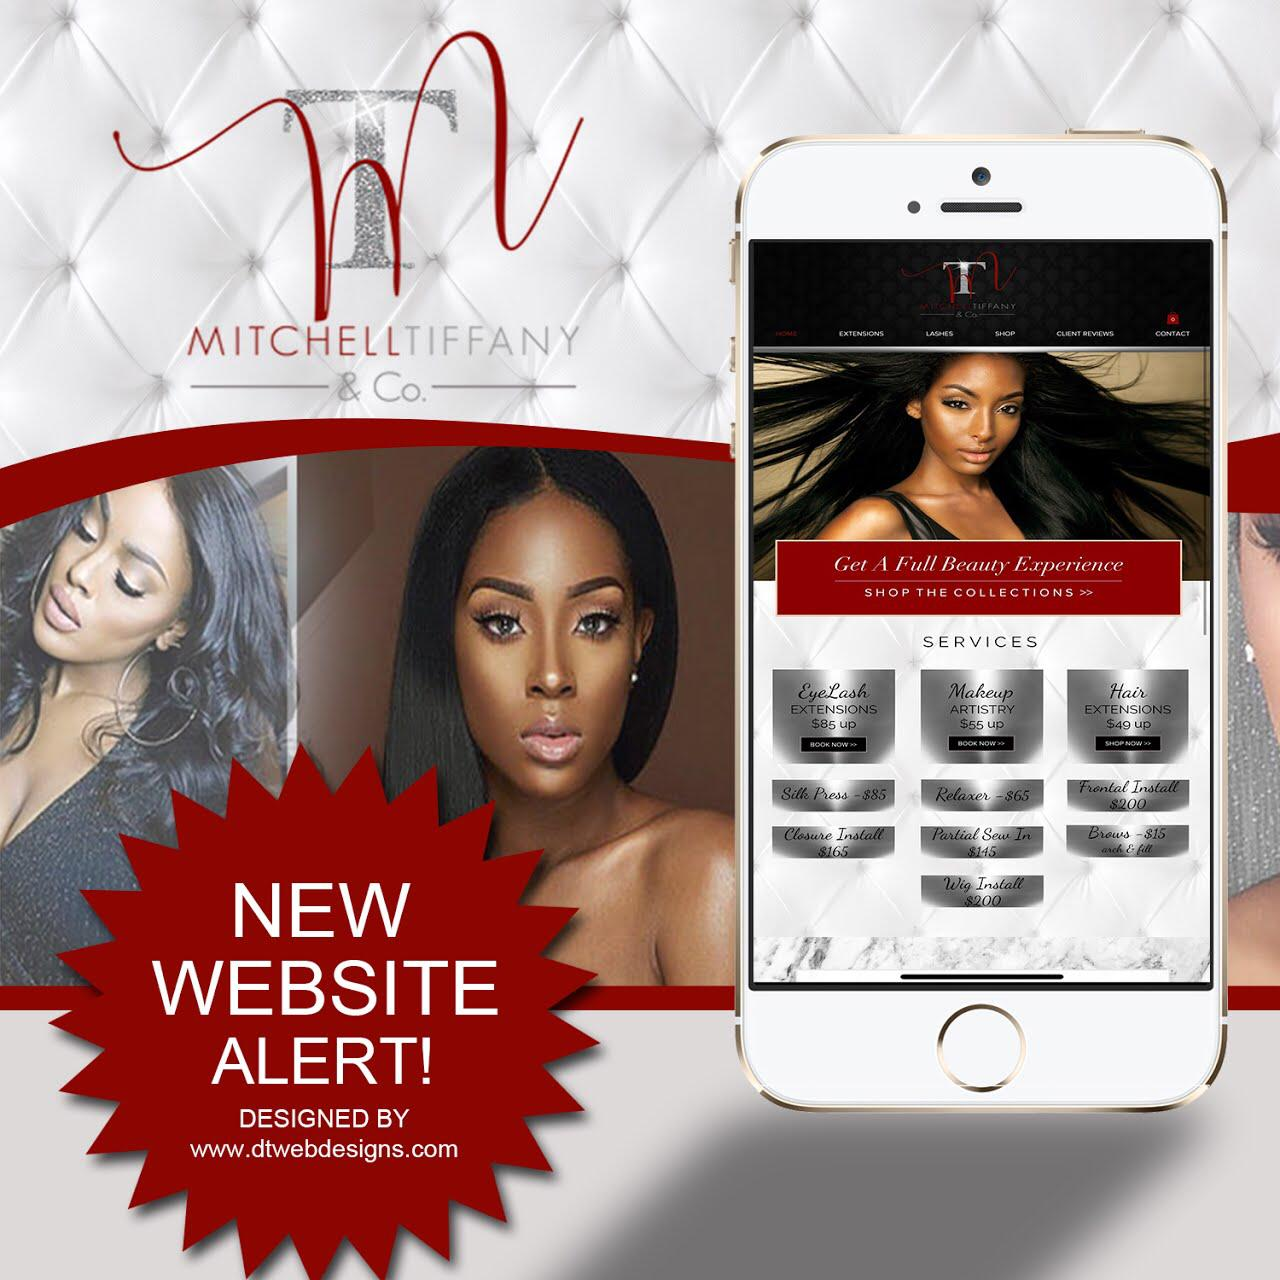 LASH, MUA, & HAIR WEBSITE